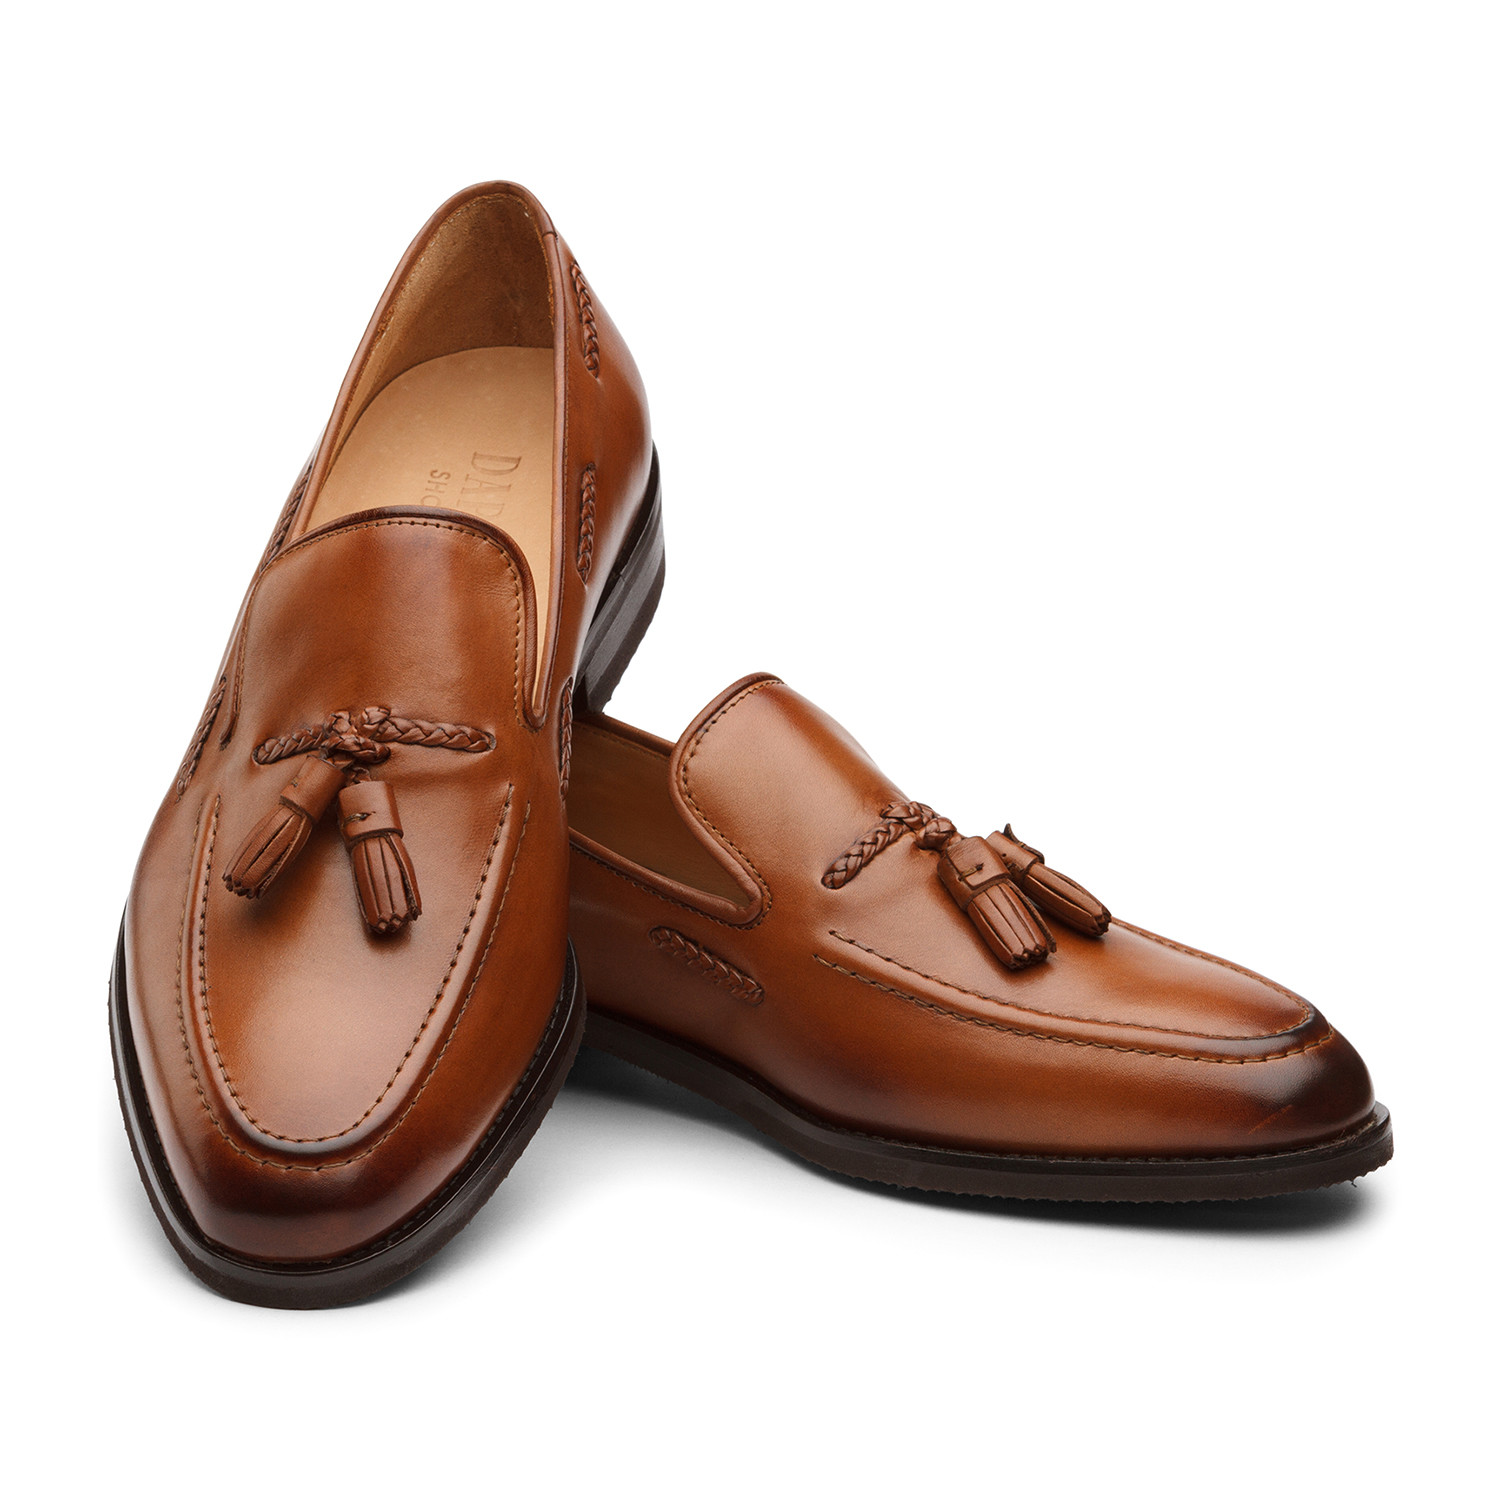 Dapper Tan Kitchen: Collin Classic Braided Tassel Loafer Leather Lined Dress